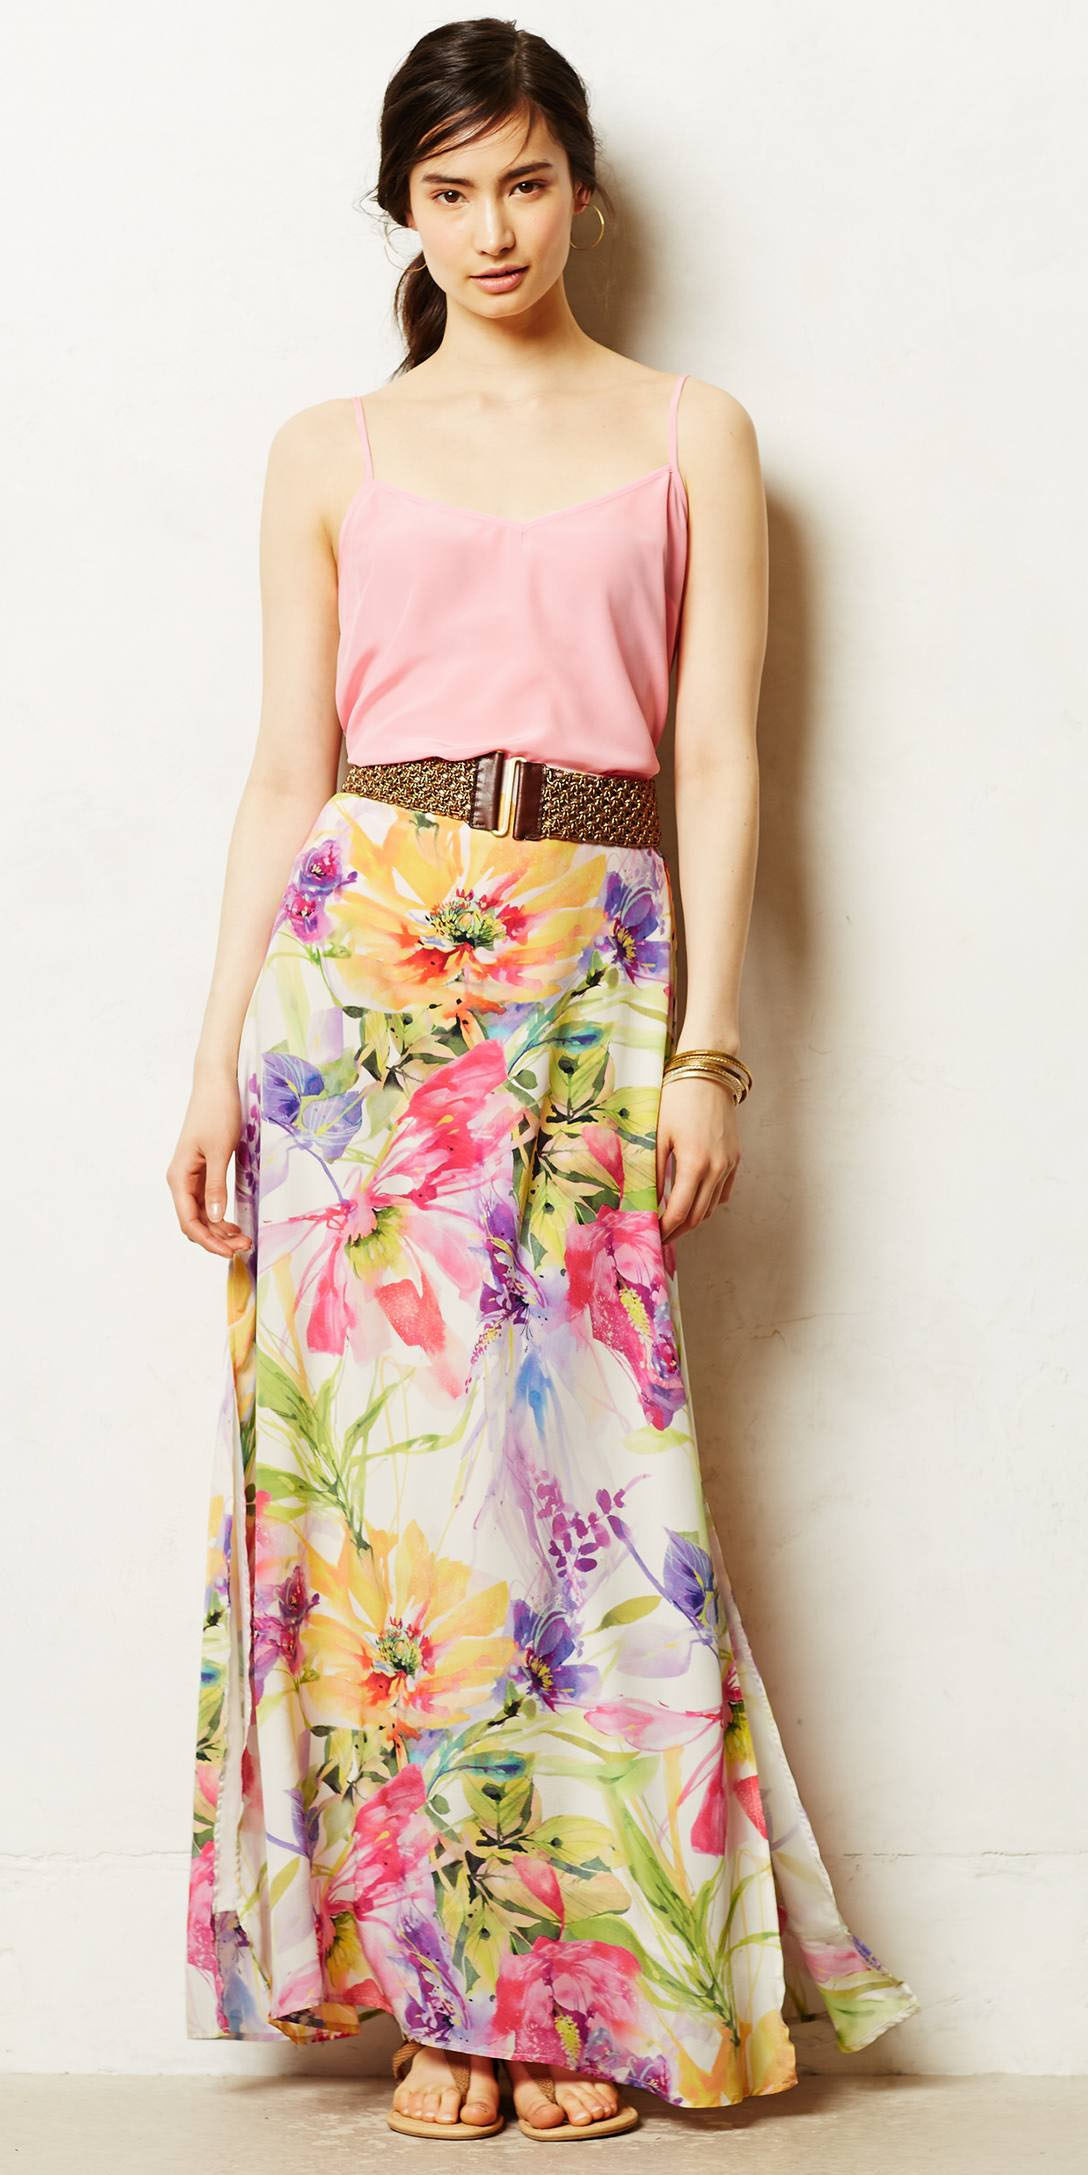 pink-light-cami-wide-belt-brun-pony-hoops-floral-print-pink-light-maxi-skirt-yellow-maxi-skirt-spring-summer-lunch.jpeg